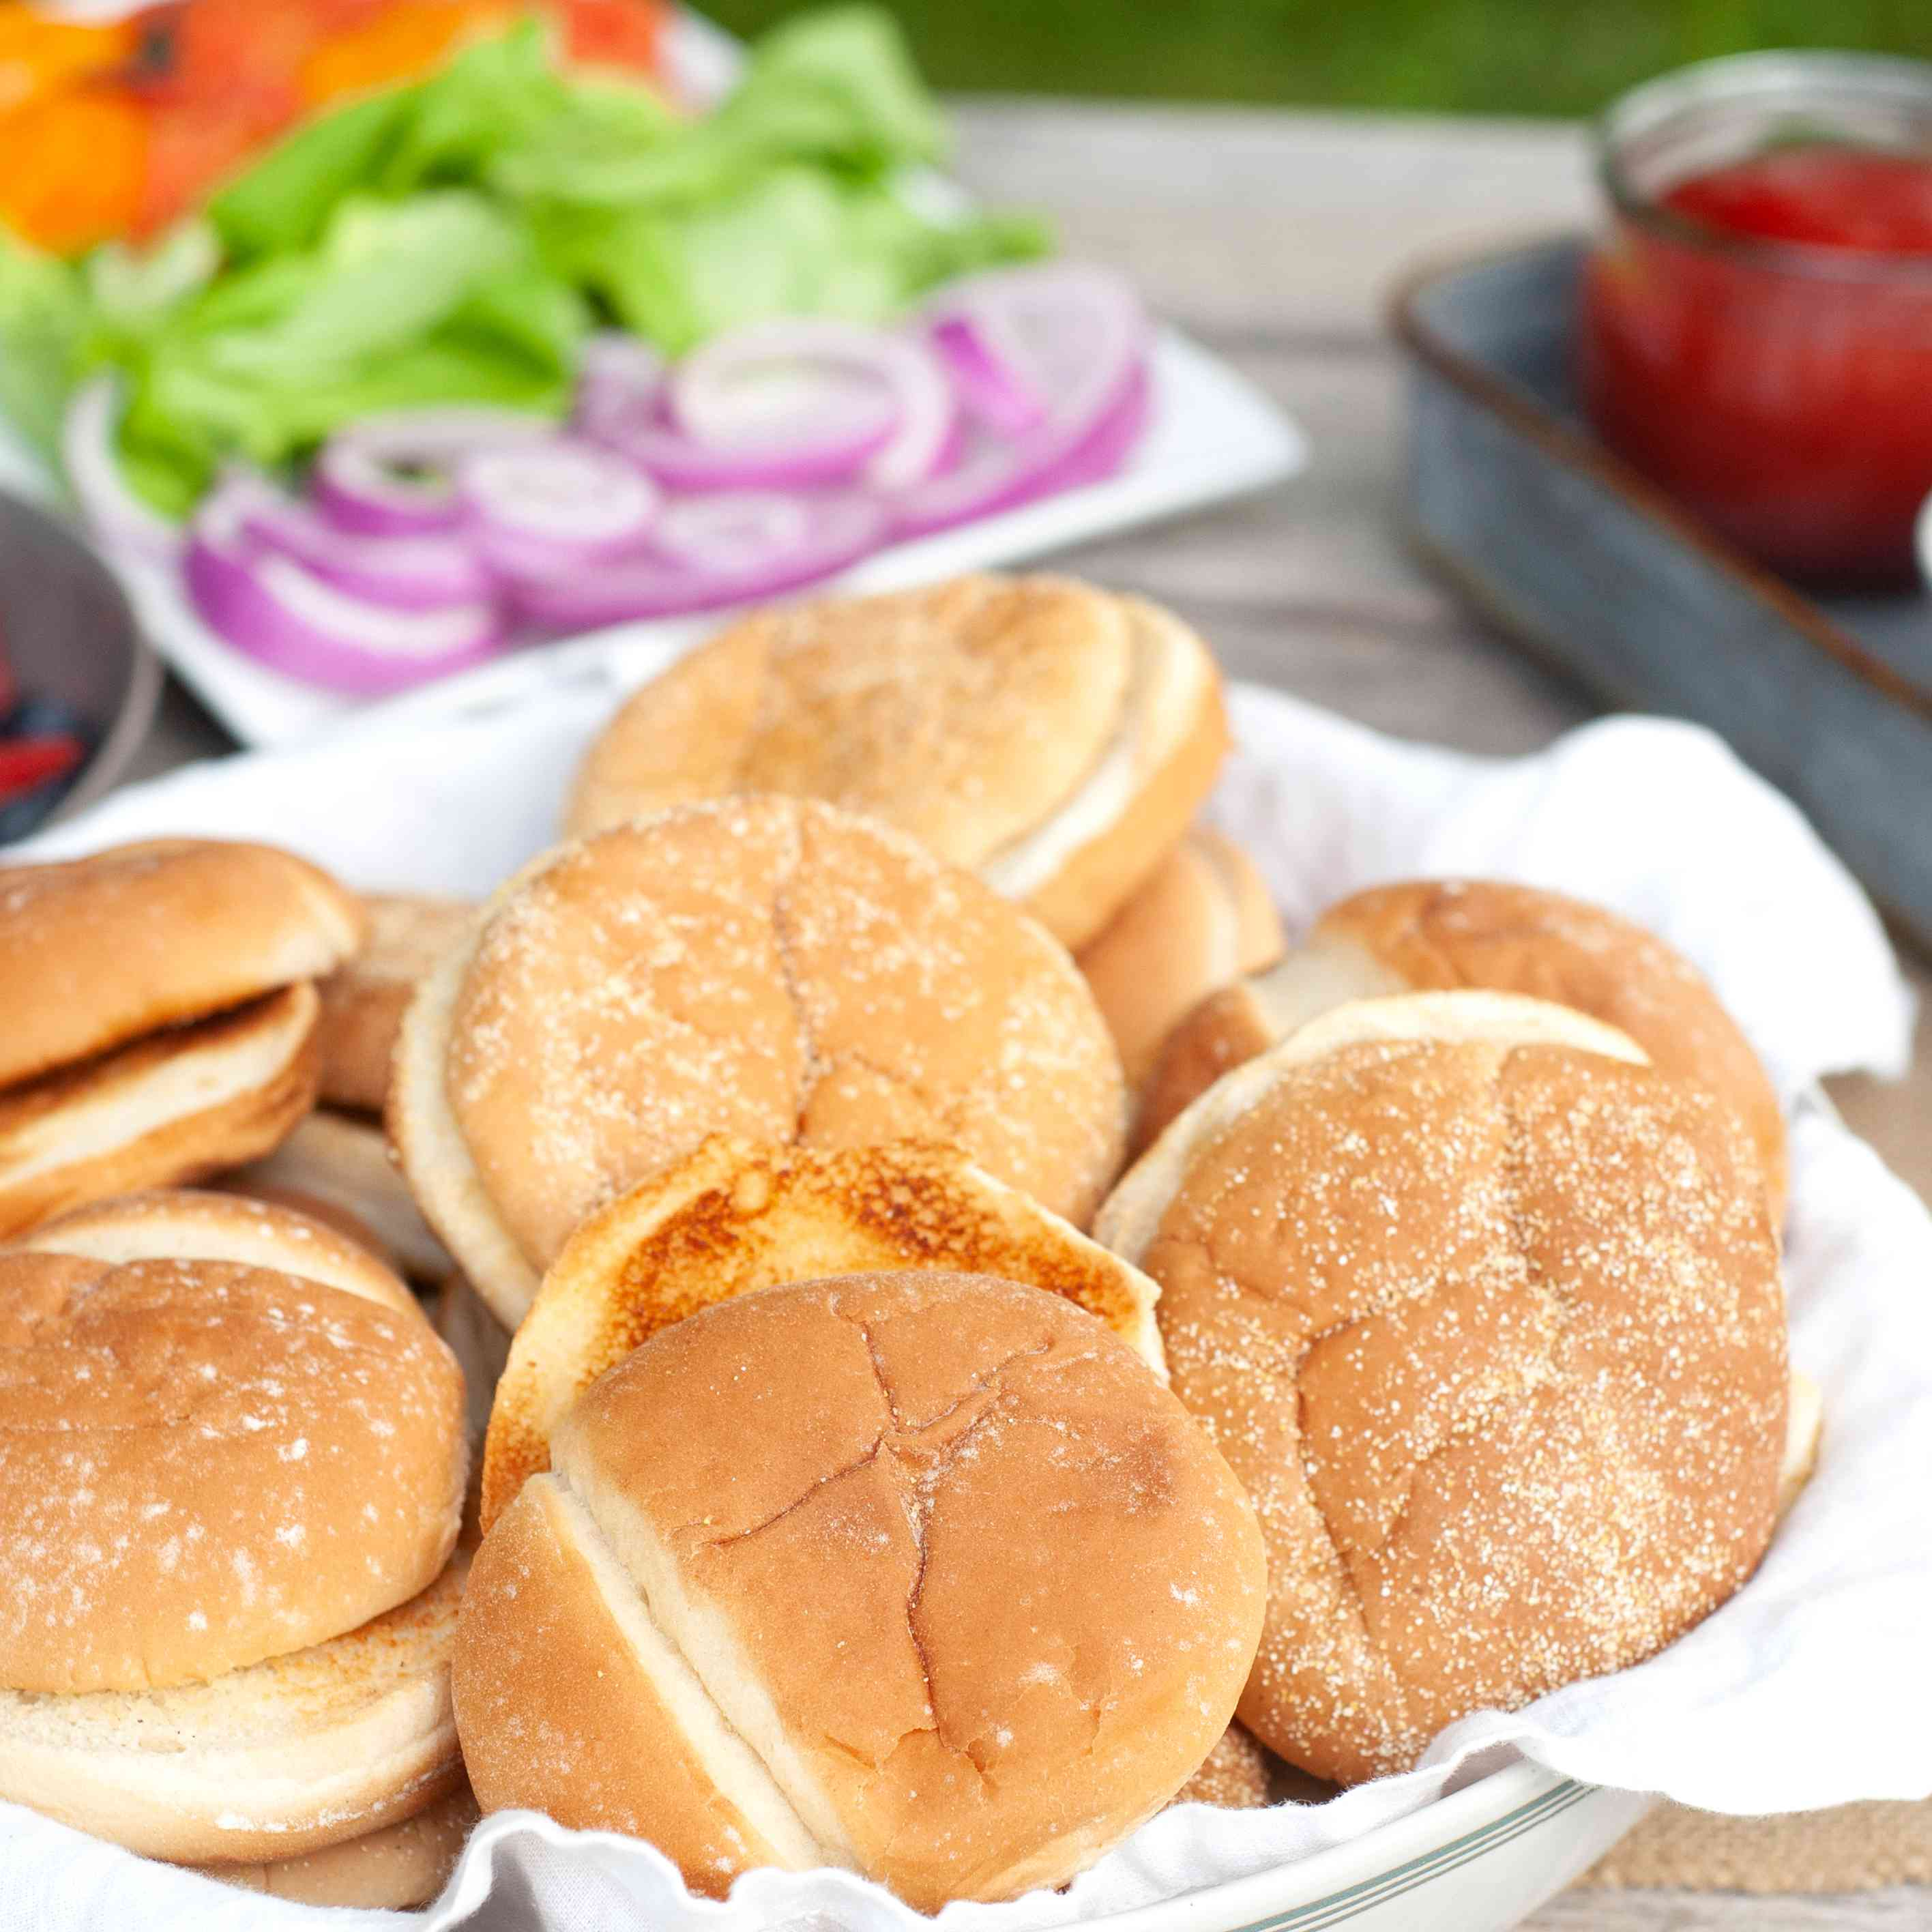 A tray full of homemade hamburger buns with sliced tomato, onion, and lettuce in the backgroun.